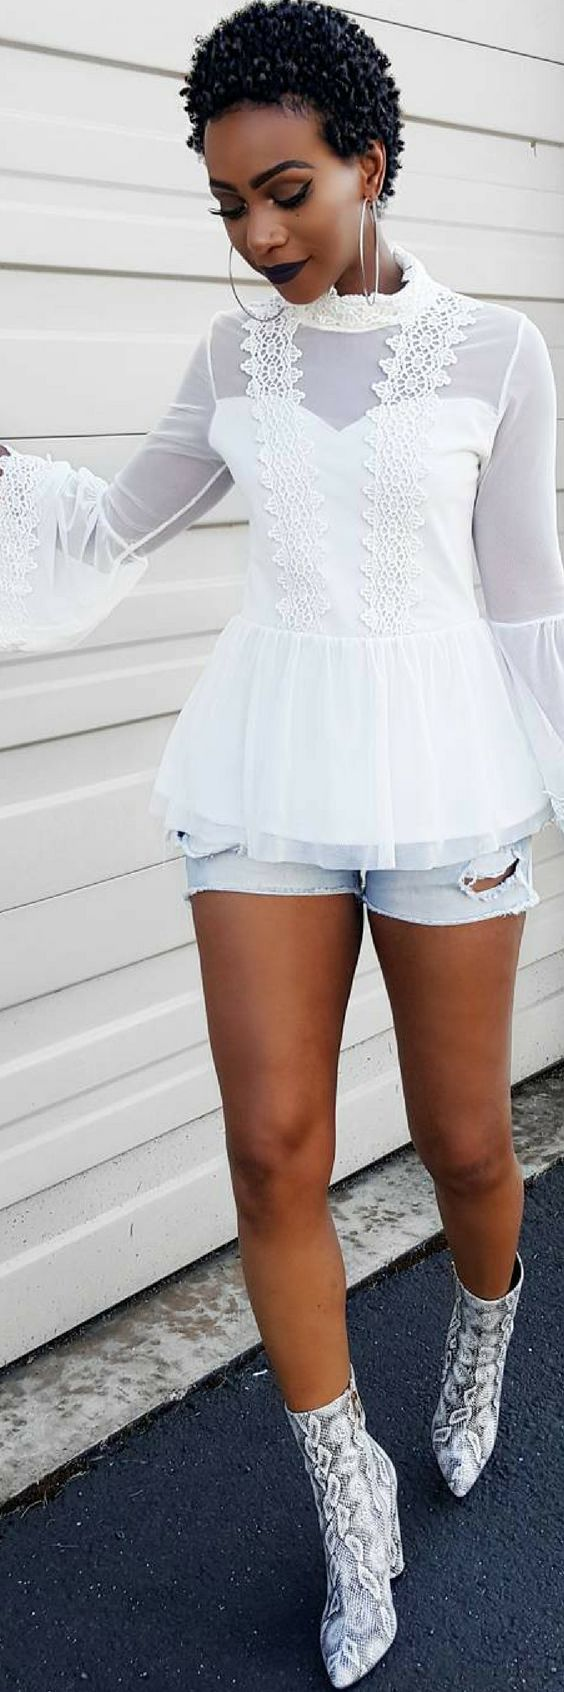 best cute fits and such images on pinterest